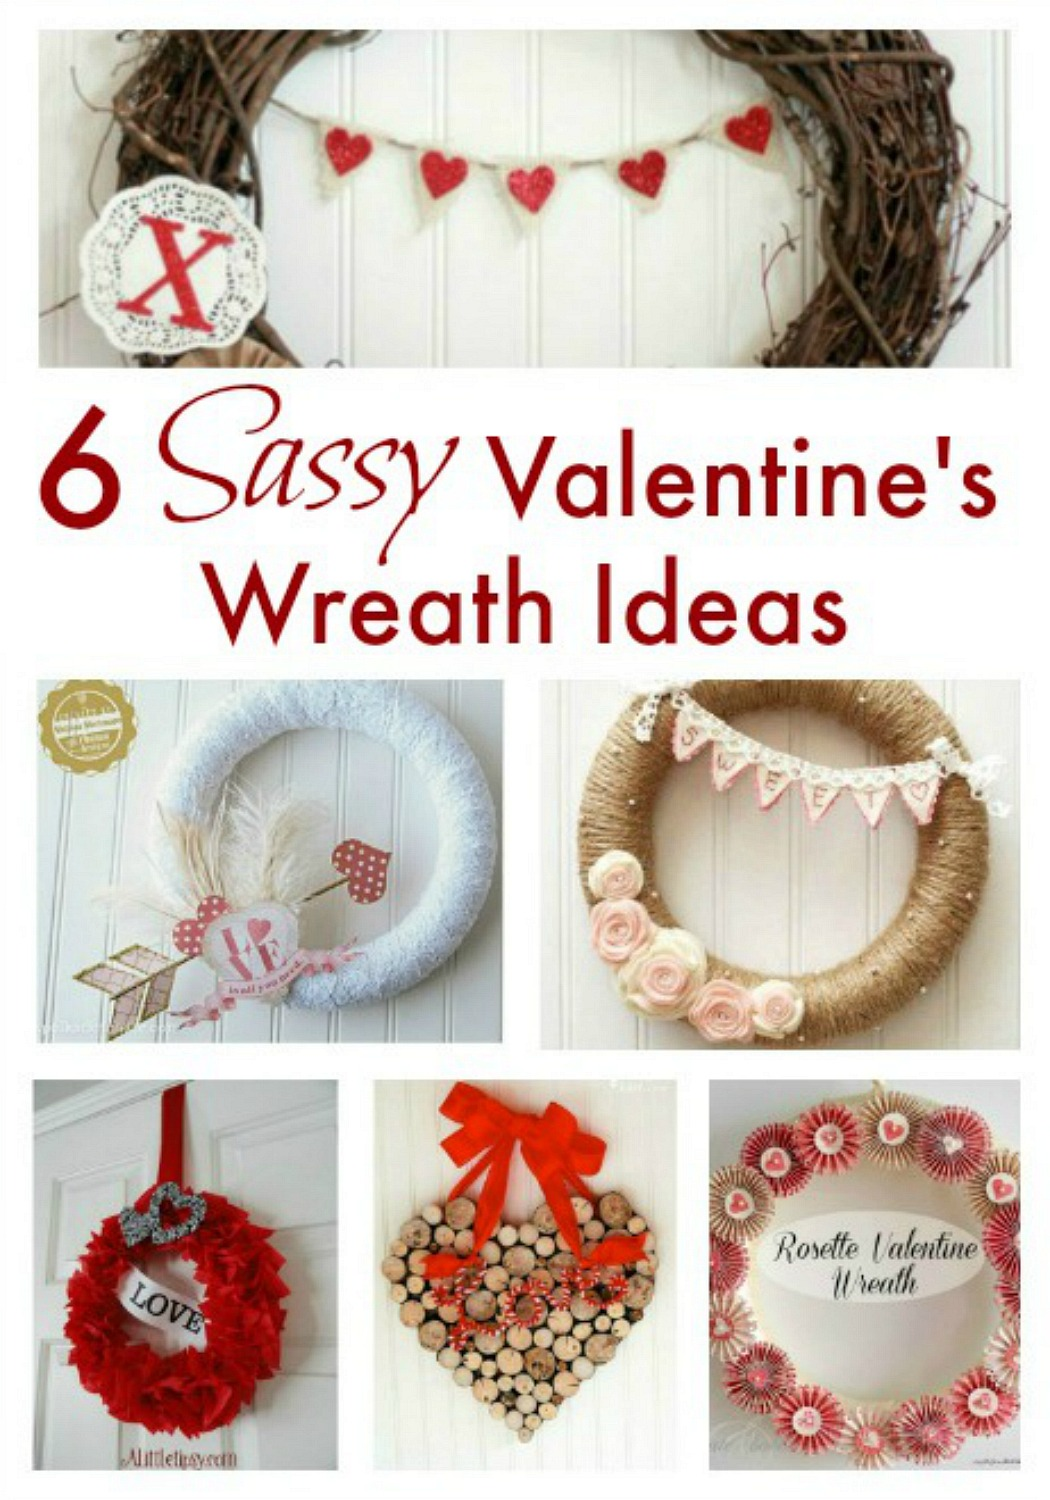 6 DIY Valentine's wreath ideas that all have the elements of romance, and they all have their own uniqueness. Easy to make and easy to enjoy.